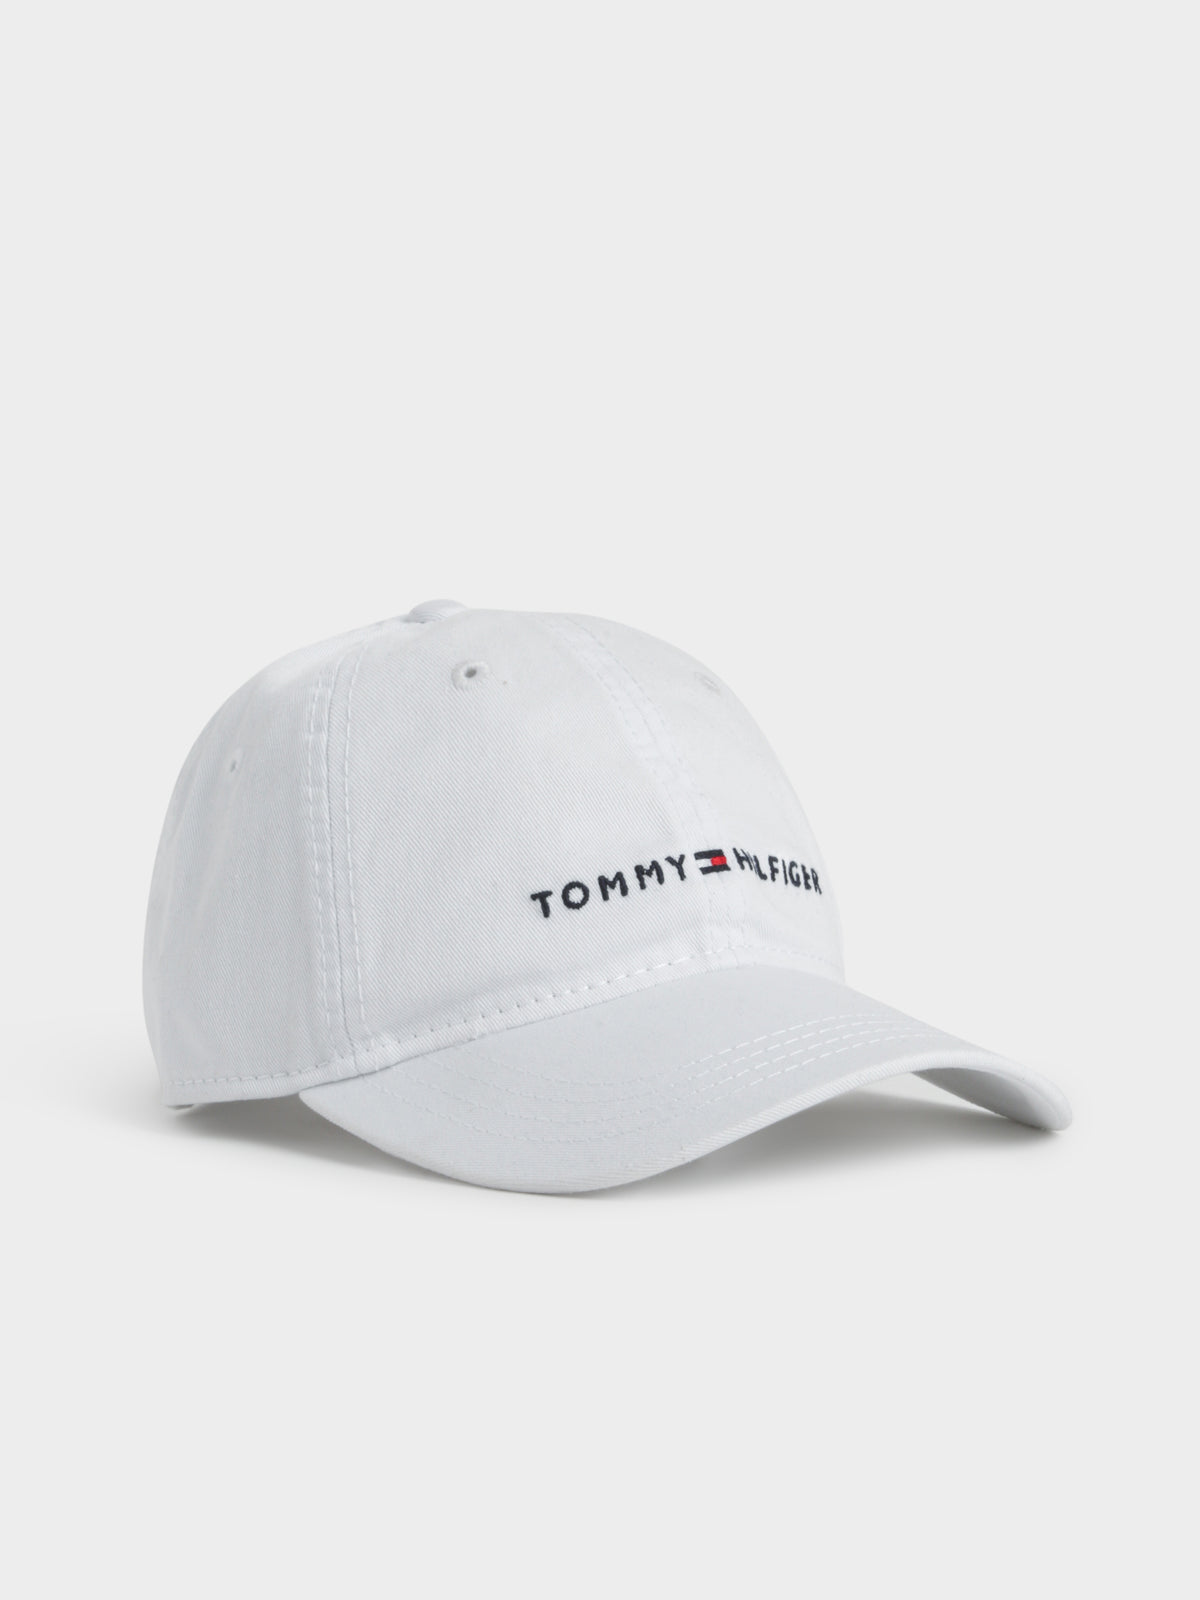 Hilfiger Cap in Deep Woven White